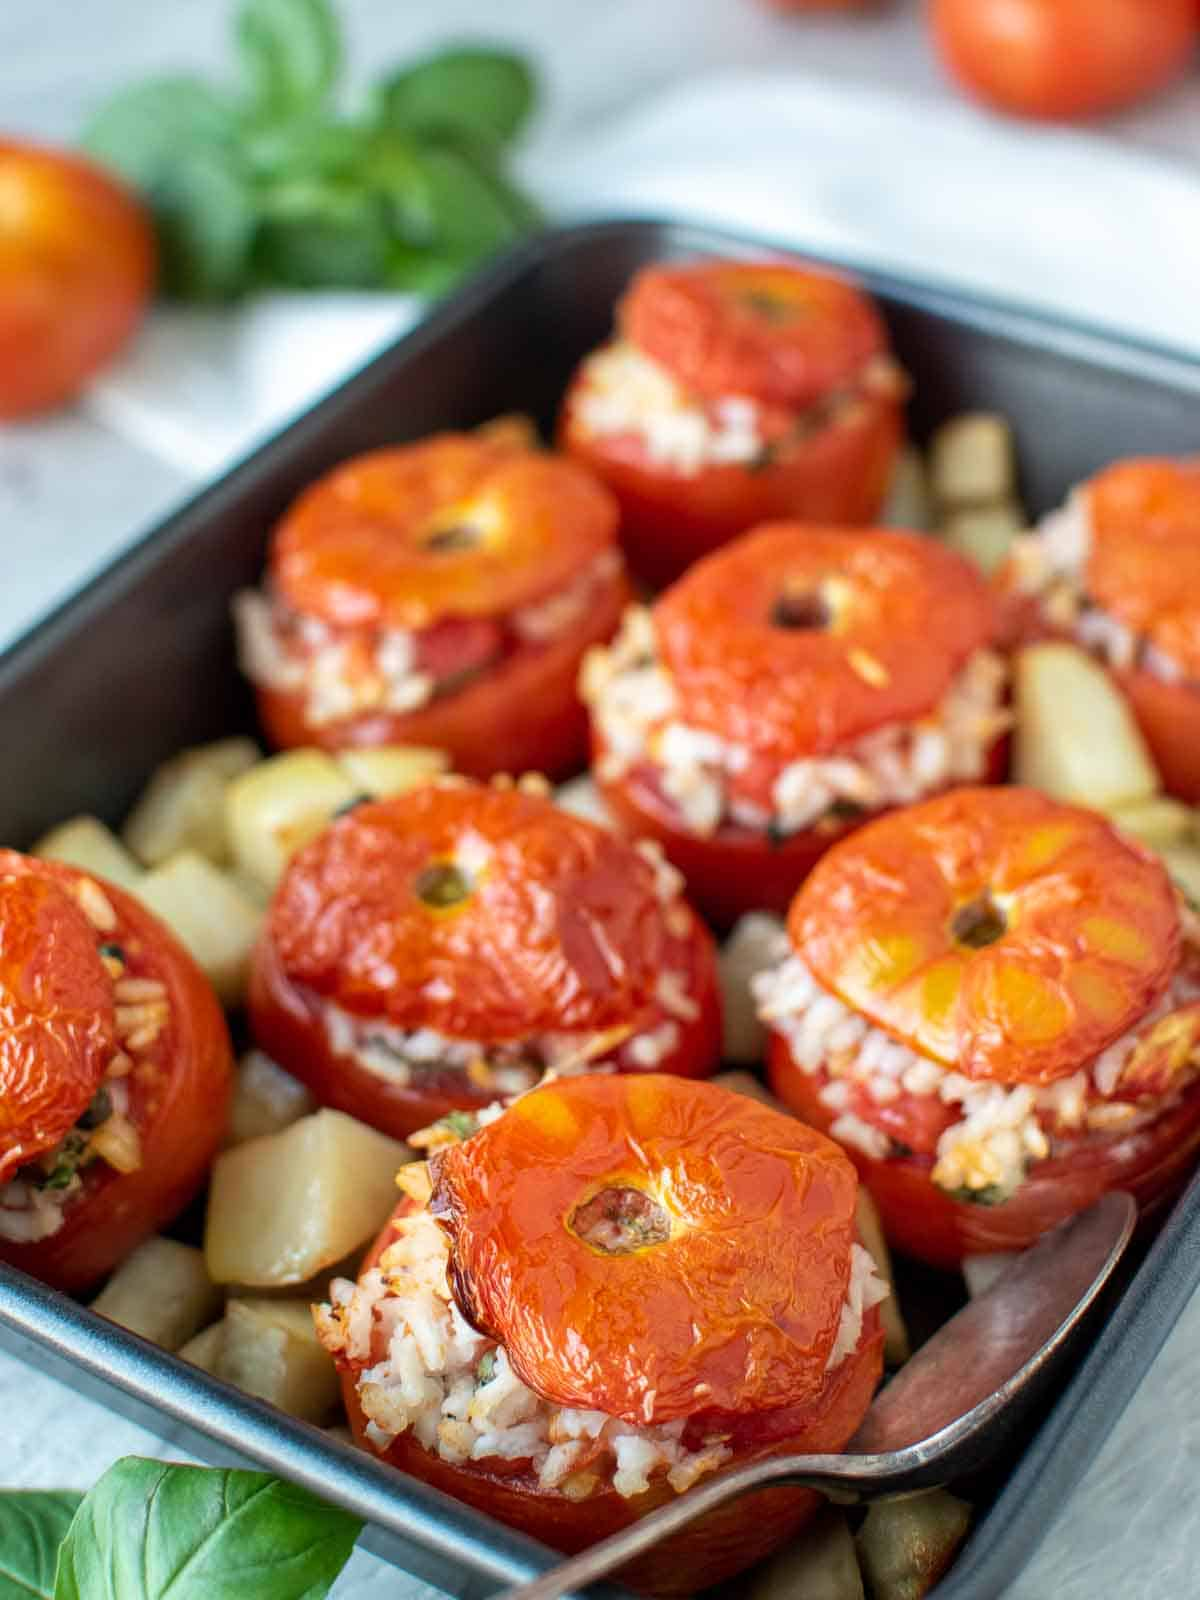 eight baked tomatoes stuffed with rice in black baking pan with cubed roasted potatoes.